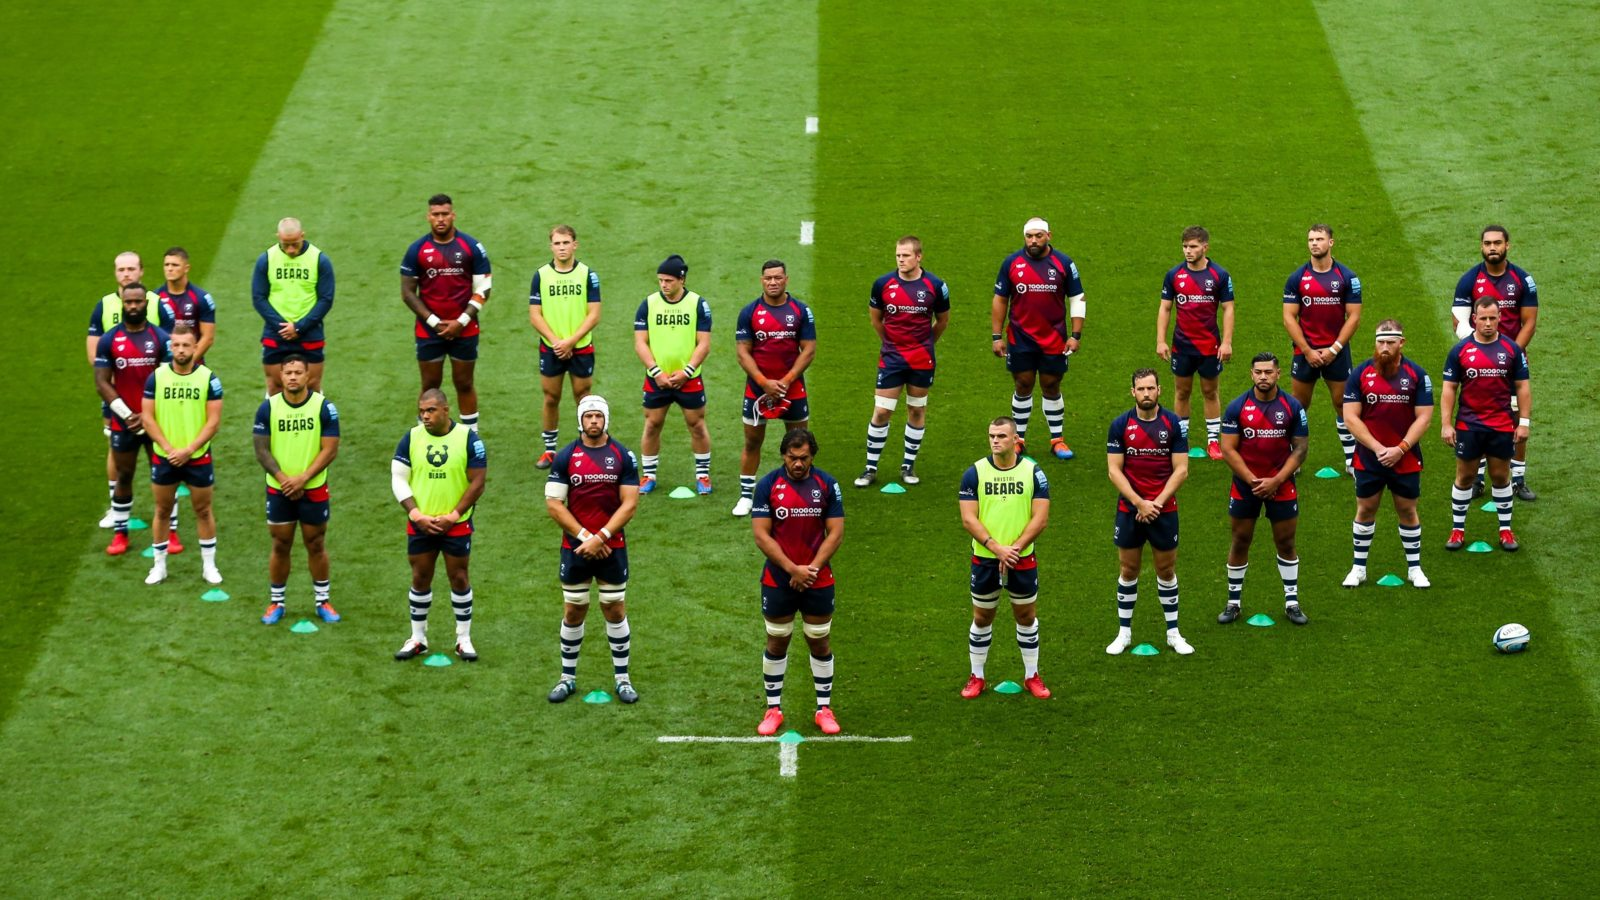 Bristol Bears Players Stand In Heart Shaped Formation Ahead Of Rugby Return